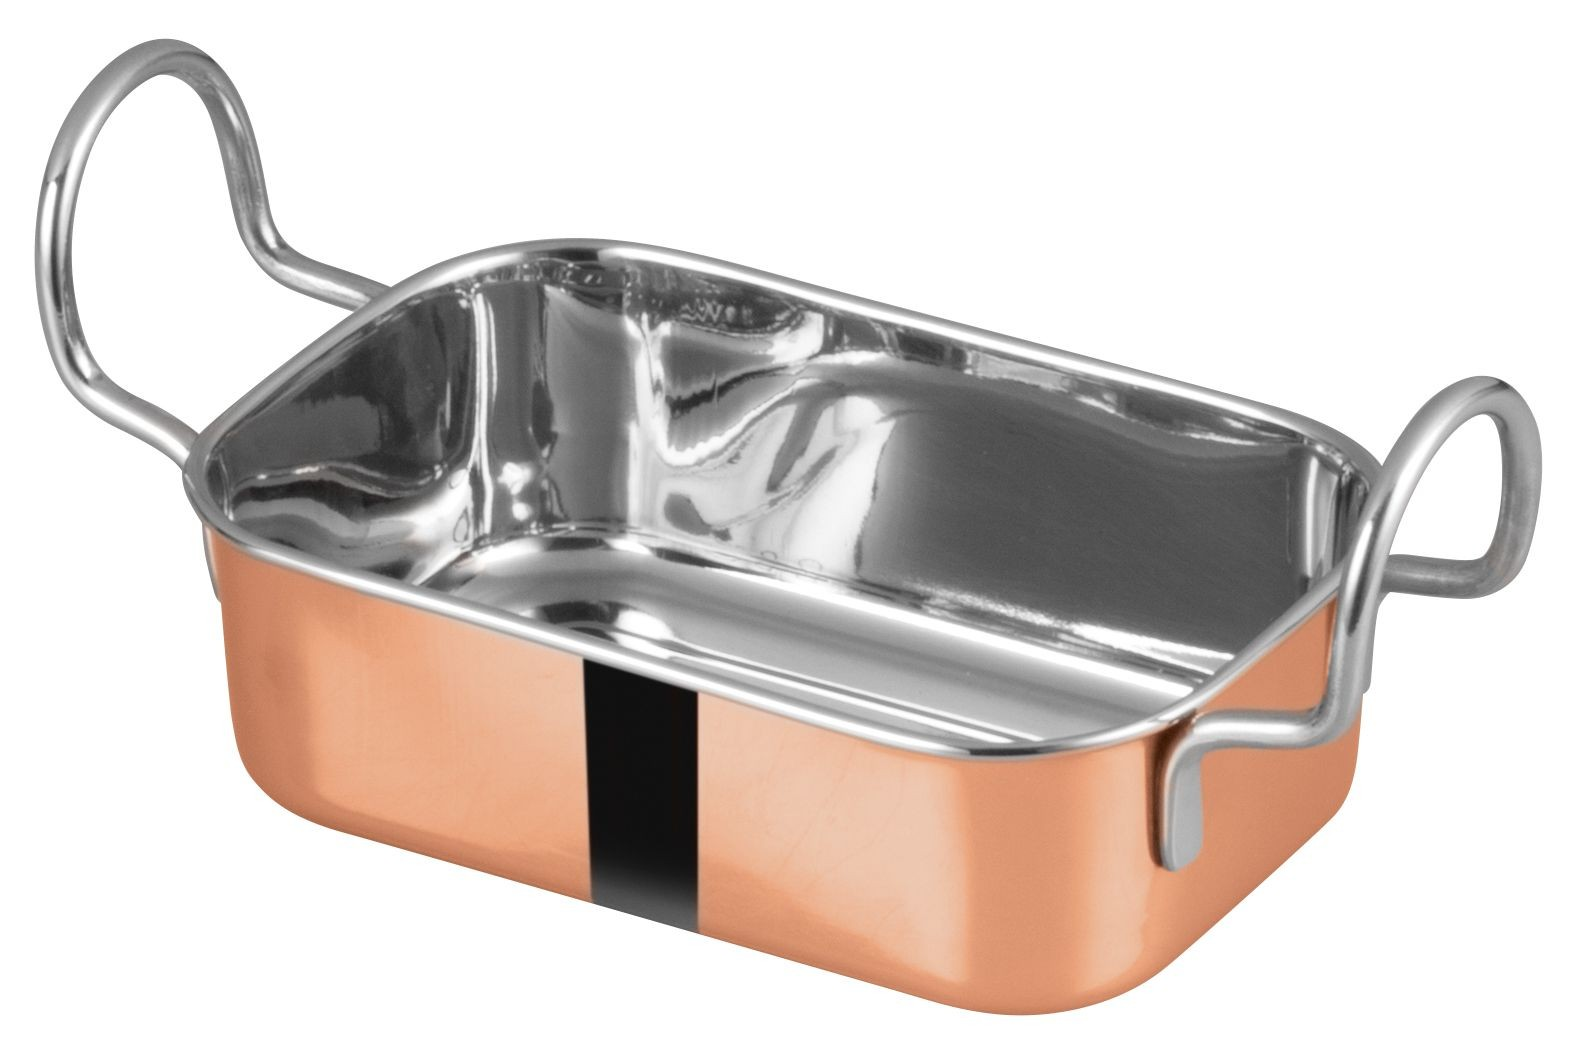 "Winco DDSB-204C Copper Plated 5-3/4"" x 3-3/4"" Mini Roasting Pan"